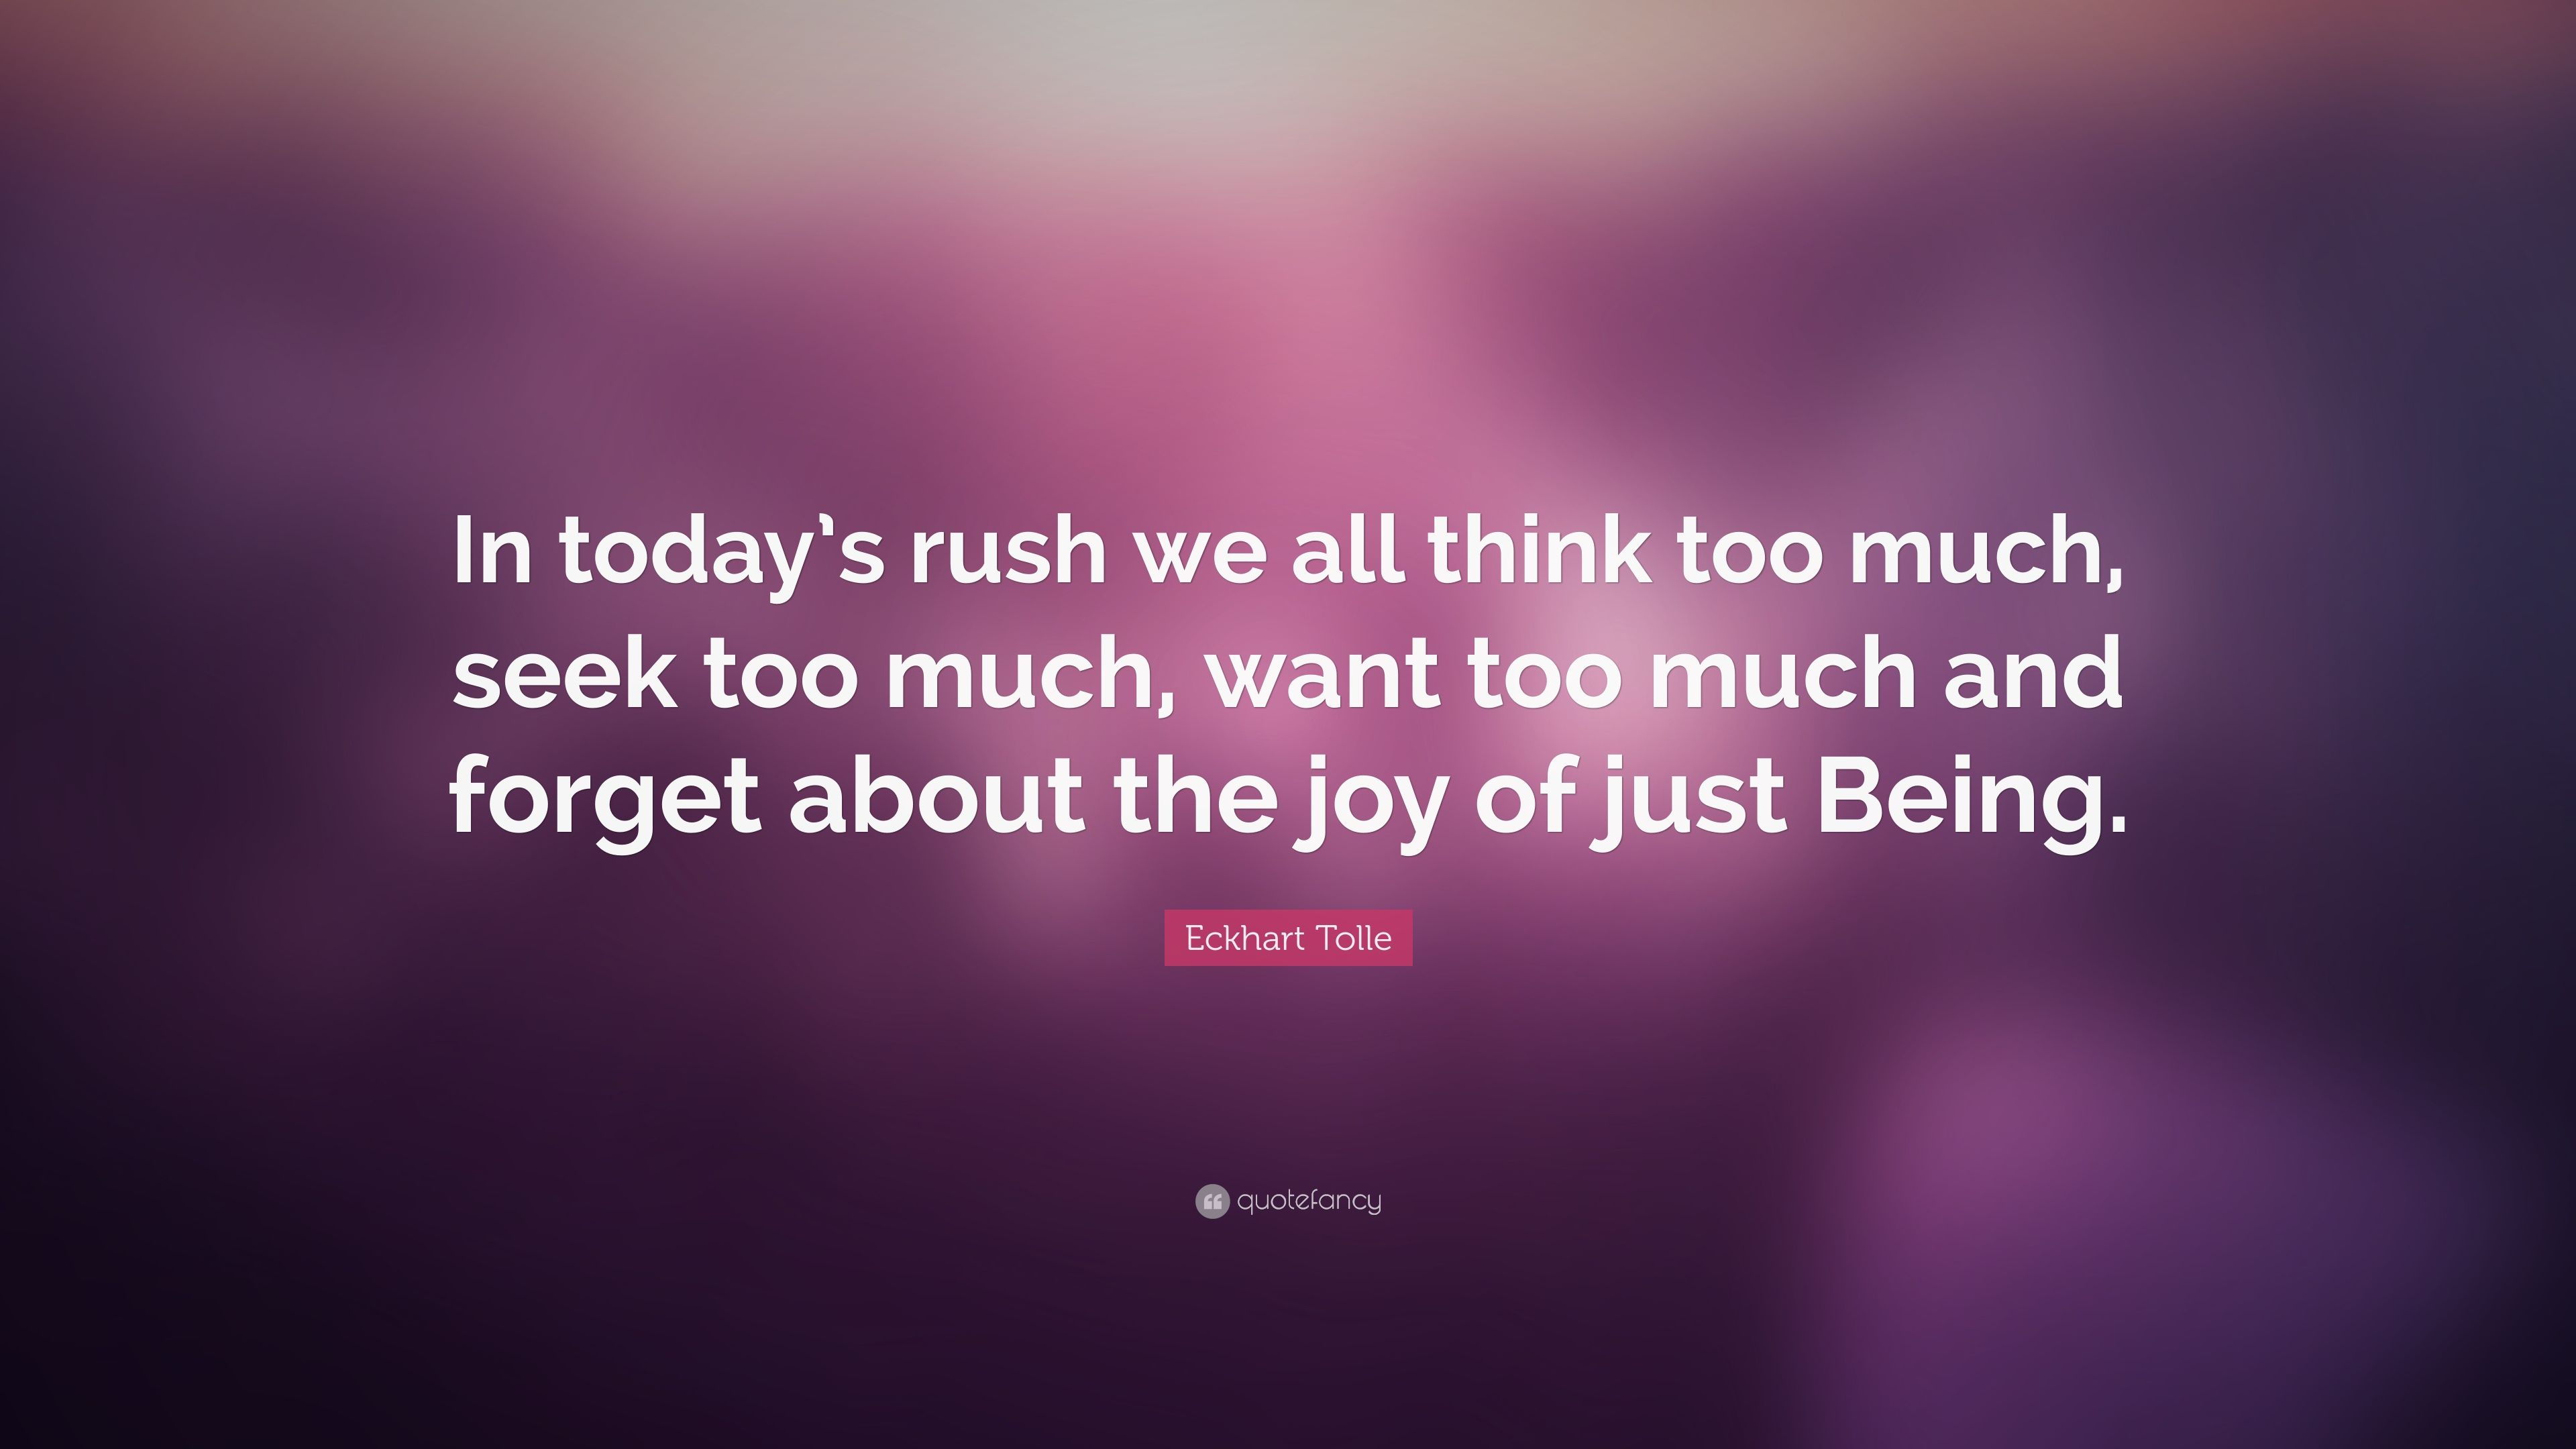 """Eckhart Tolle Quotes Classy Eckhart Tolle Quote """"In Today's Rush We All Think Too Much Seek"""